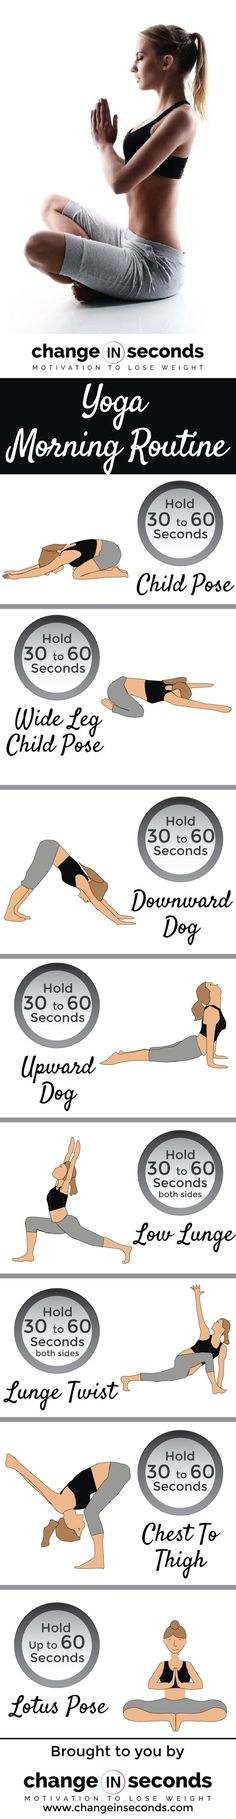 Yoga Morning Routine (Download PDF) www.changeinsecon...